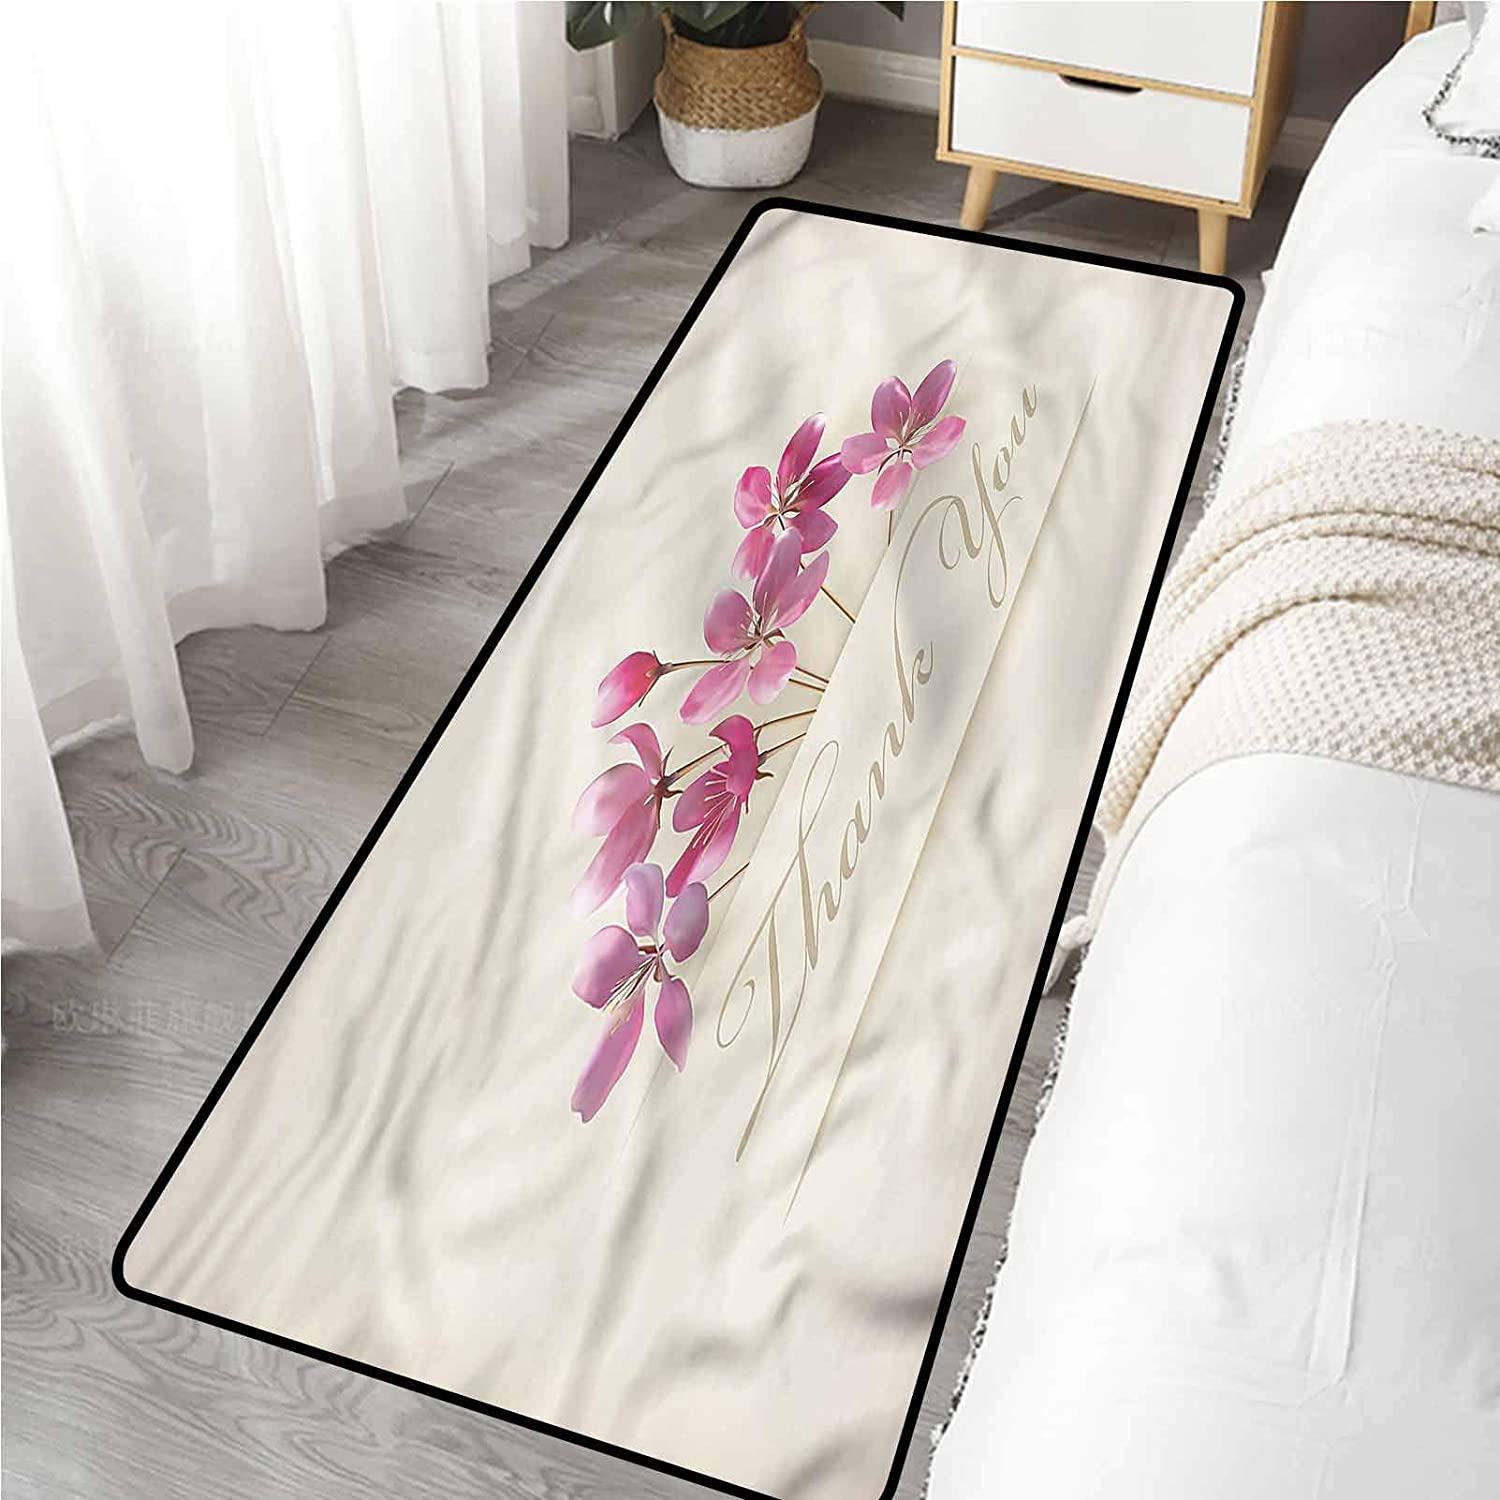 Bathroom Mat 24 x 72 Inch, Cherry Blossoms Flowers Thank You Slip Resistant Mat